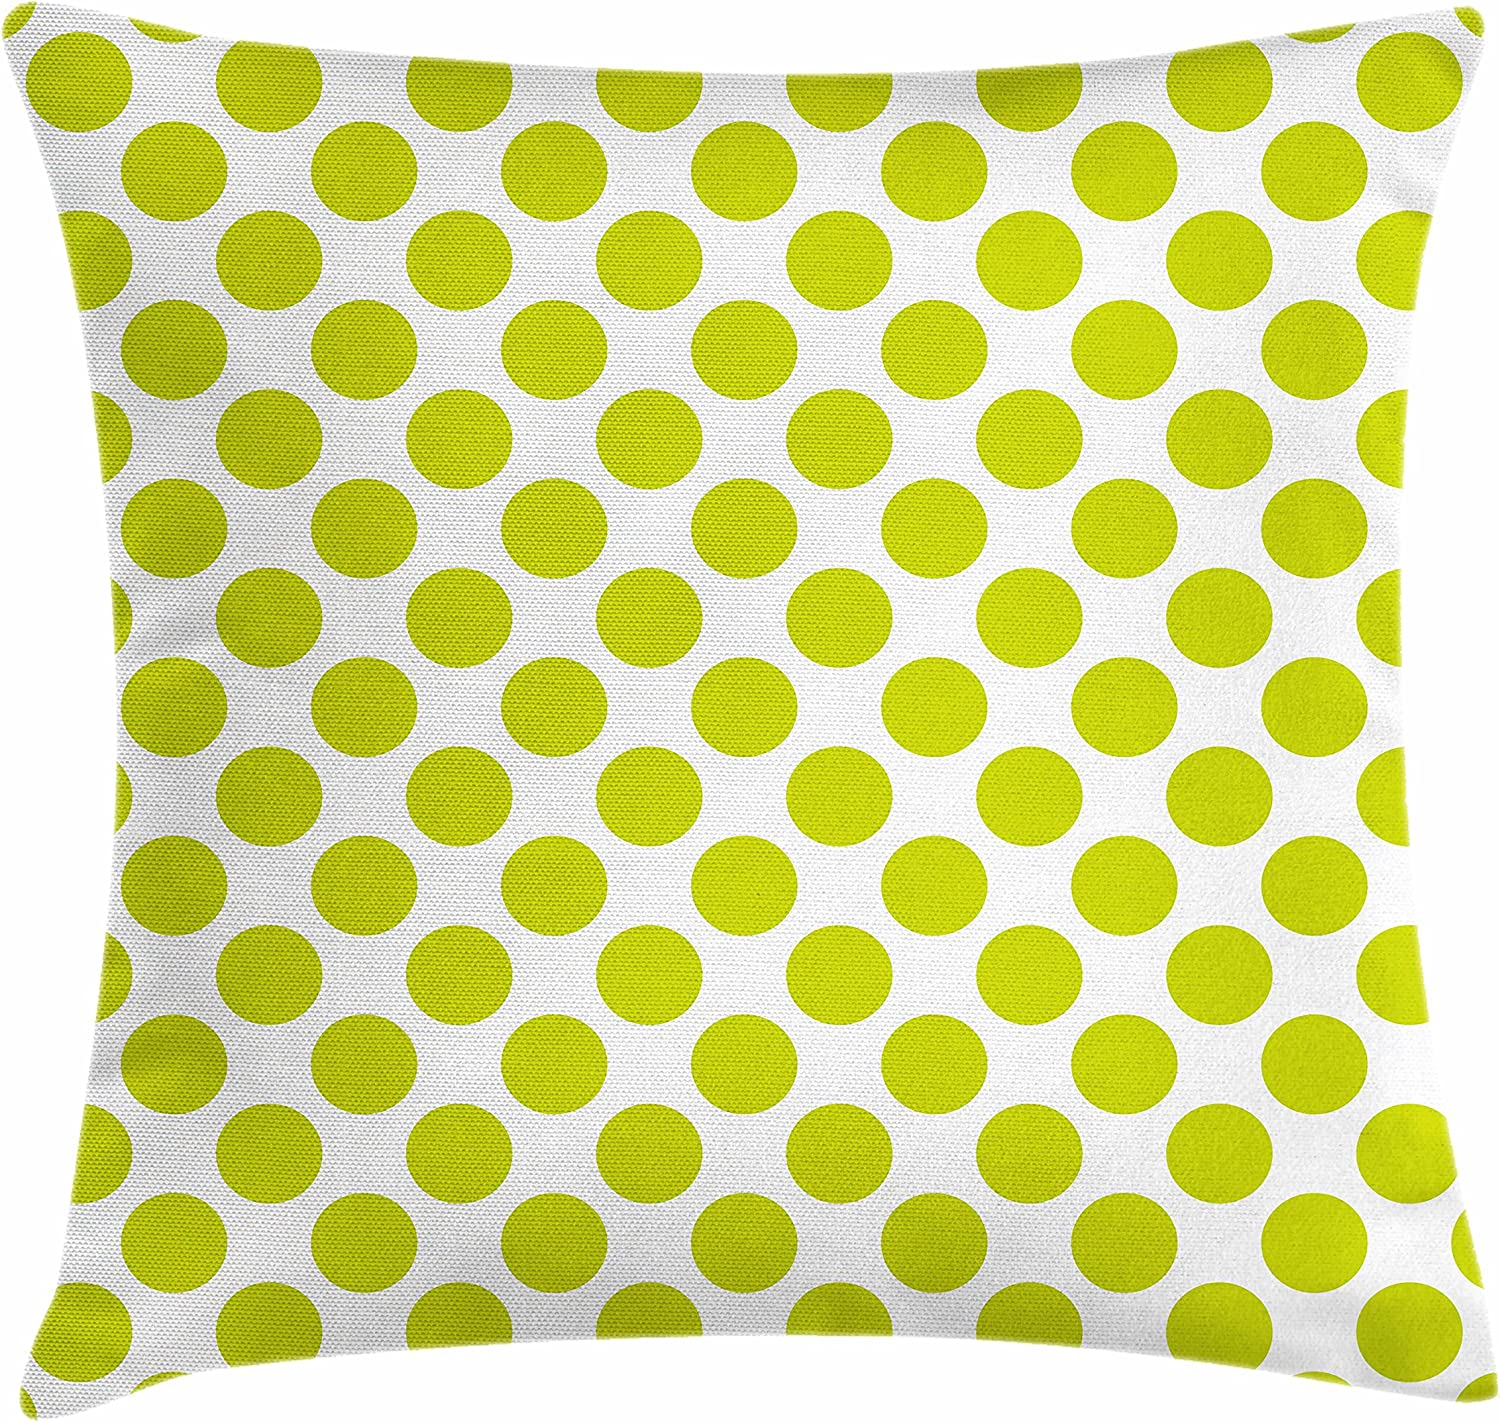 Ambesonne Lime Green Throw Pillow Cushion Cover Nostalgic Polka Dots Style Large Circles Girlish Vintage Rounds Pattern Decorative Square Accent Pillow Case 28 X 28 White Apple Green Home Kitchen Amazon Com